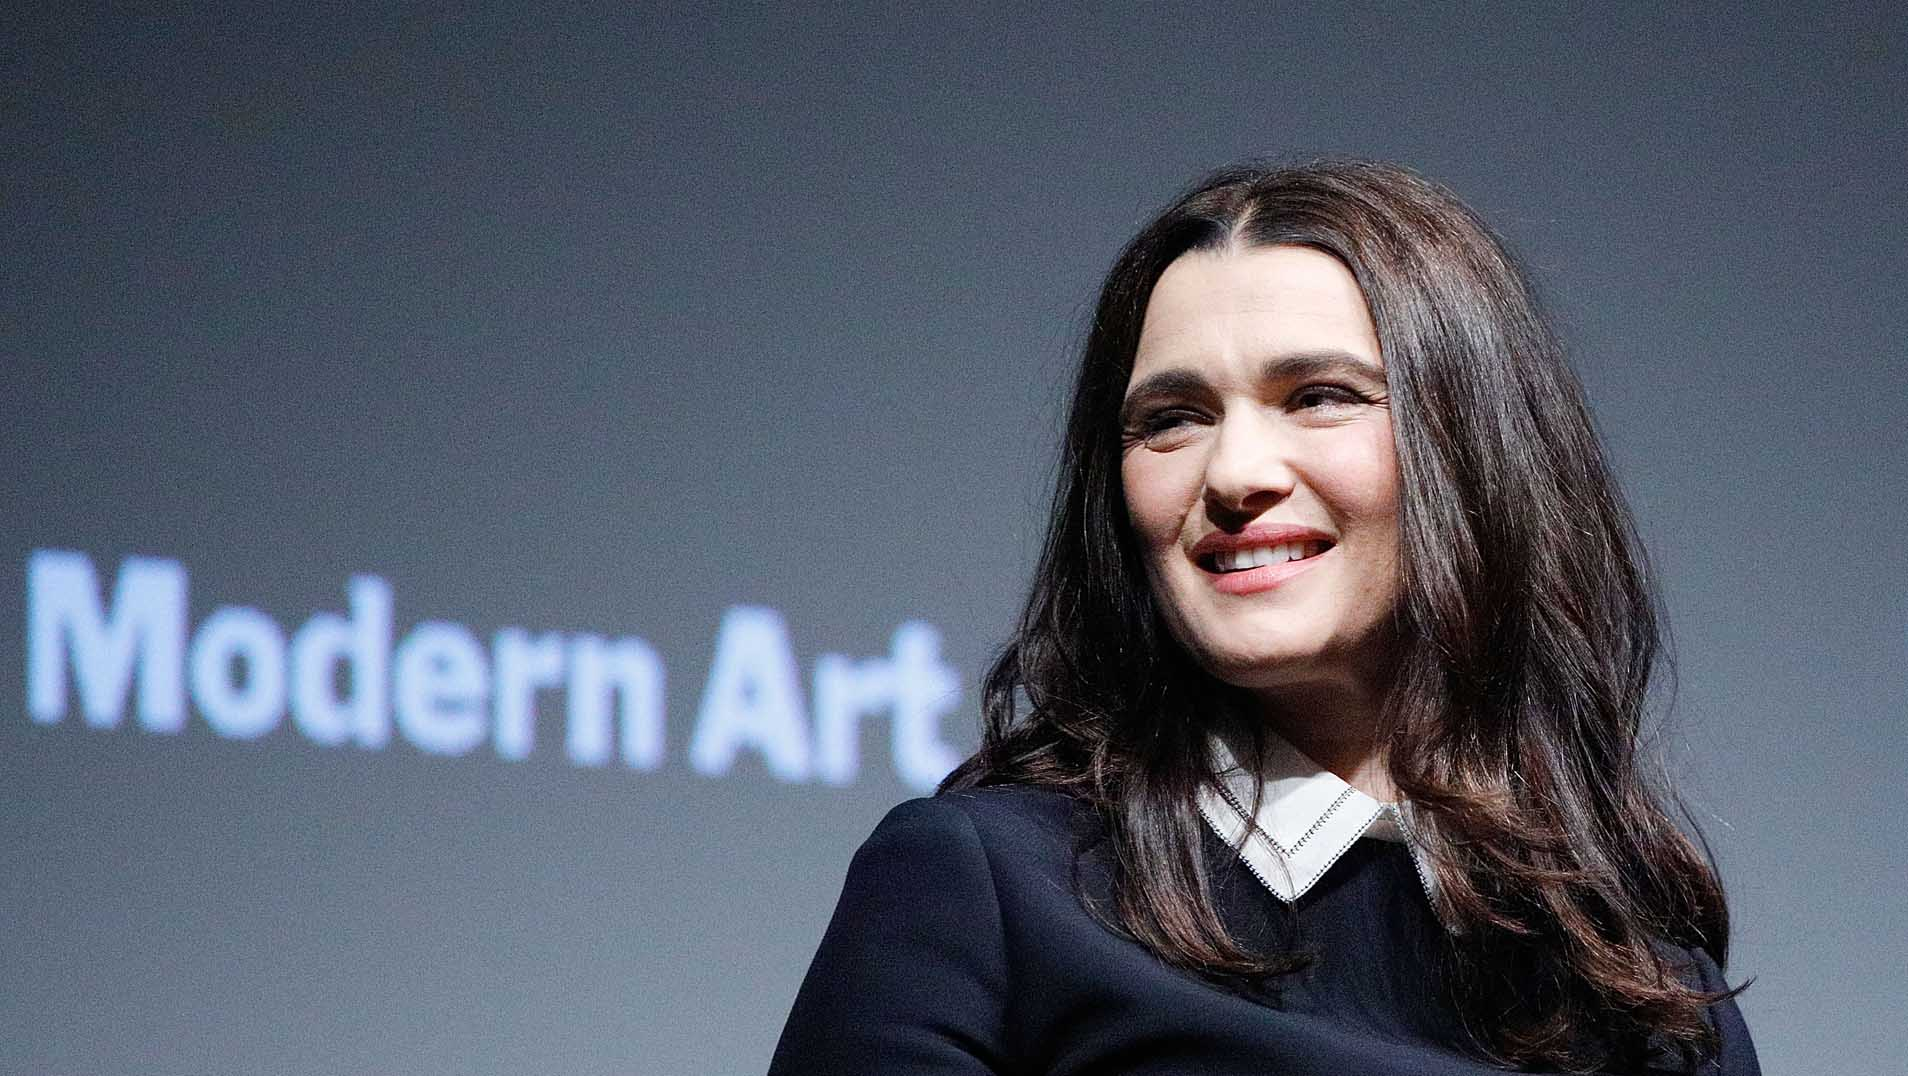 Rachel Weisz at the MoMA Screening of The Favourite.